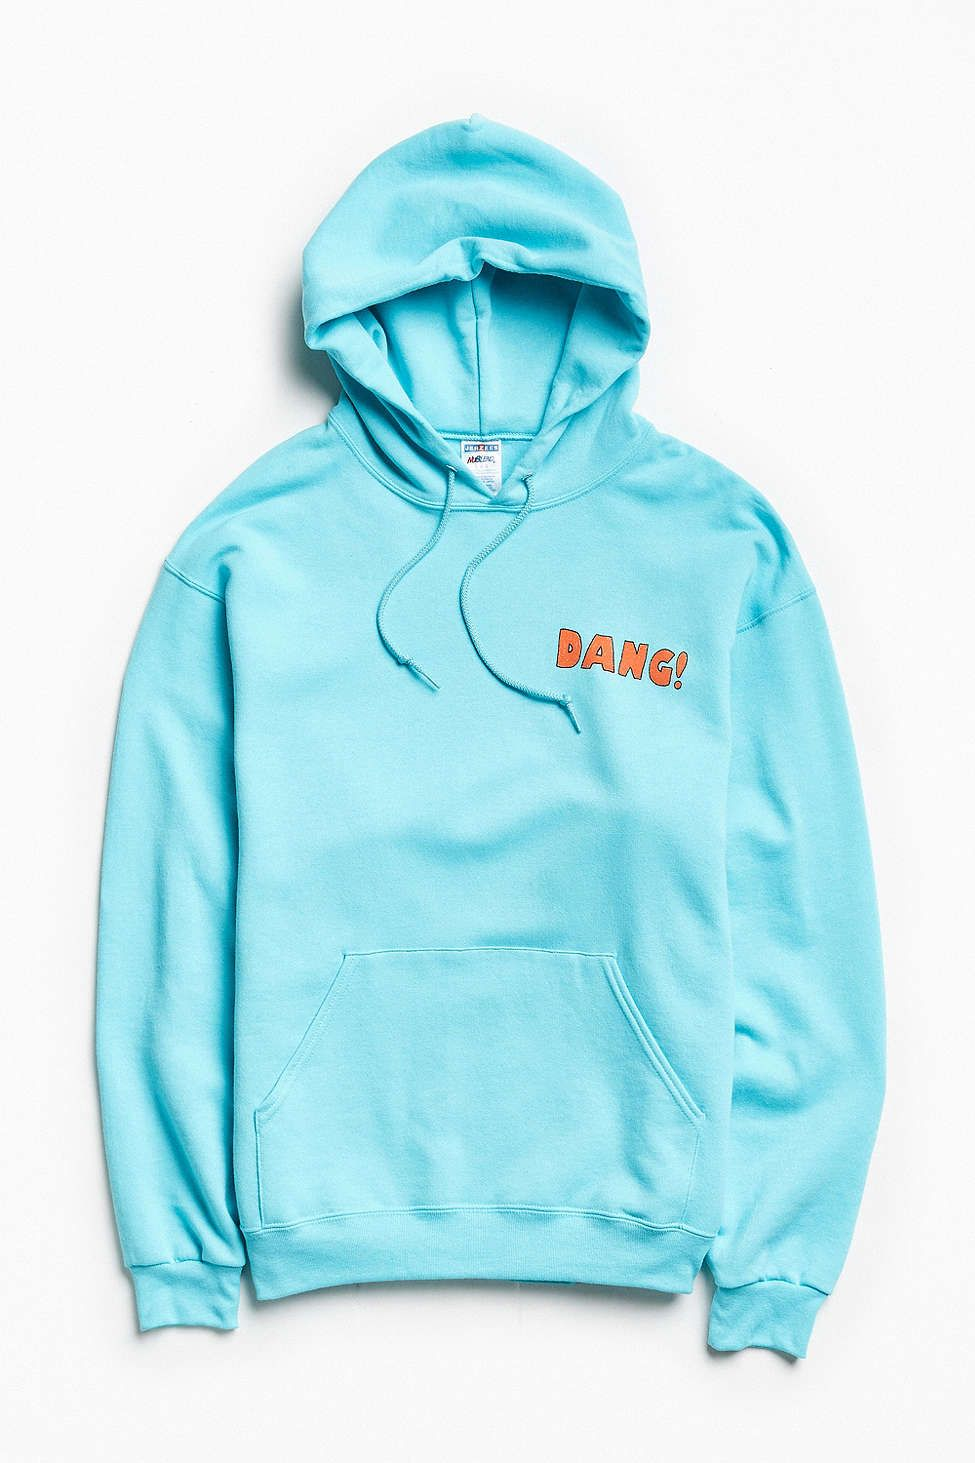 358747512cf Mac Miller Dang! Hoodie Sweatshirt in 2019 | Fashion / Style ...